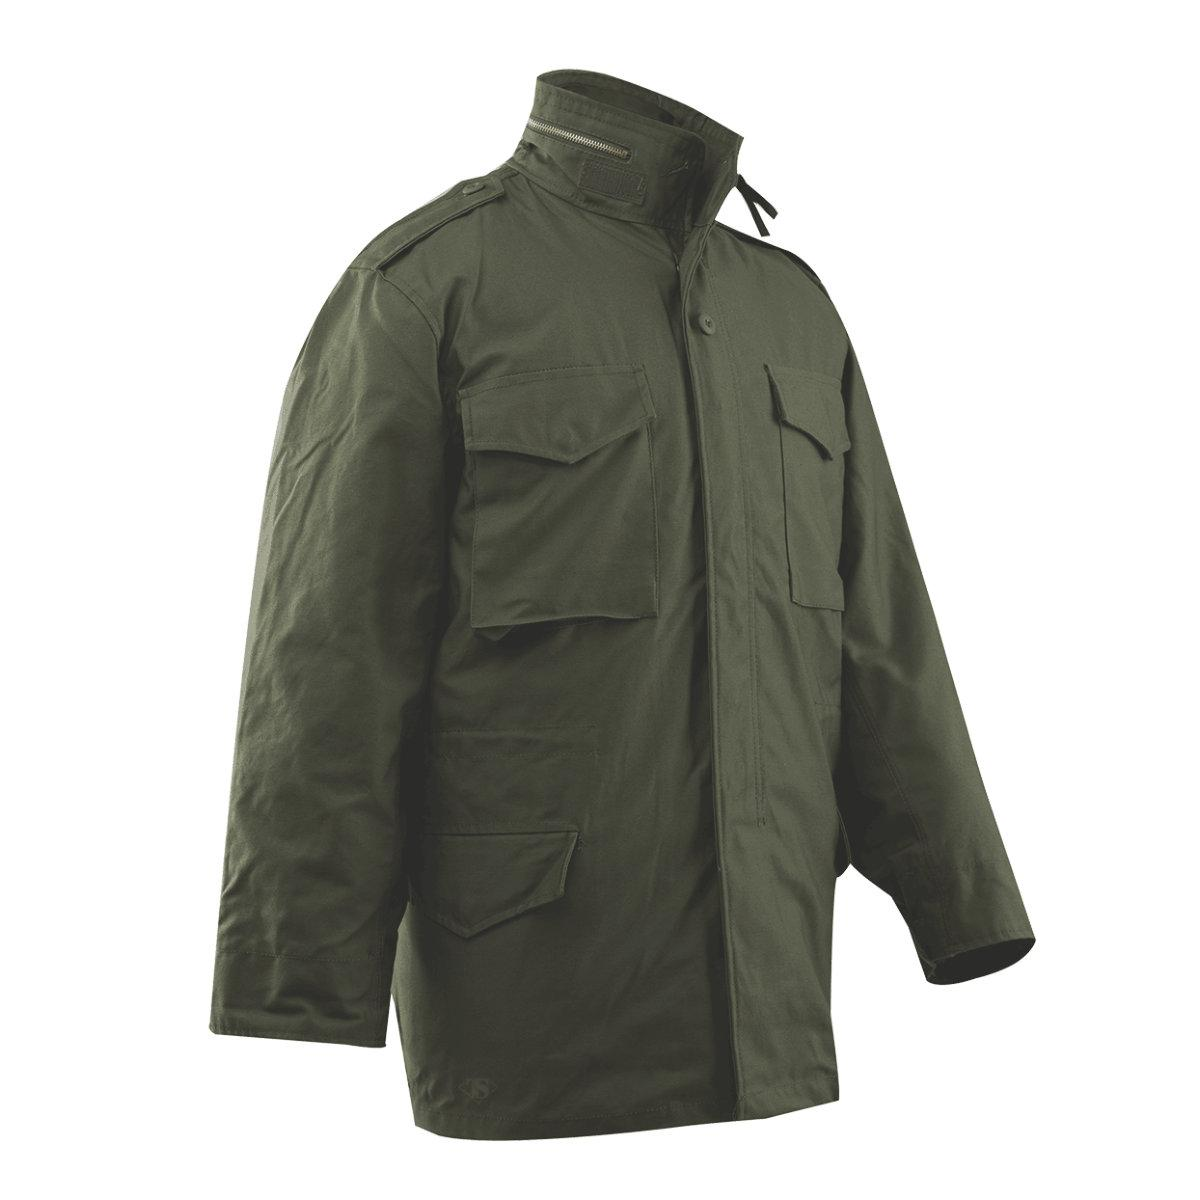 Tru-Spec M-65 Field Coat/Jacket with Liner